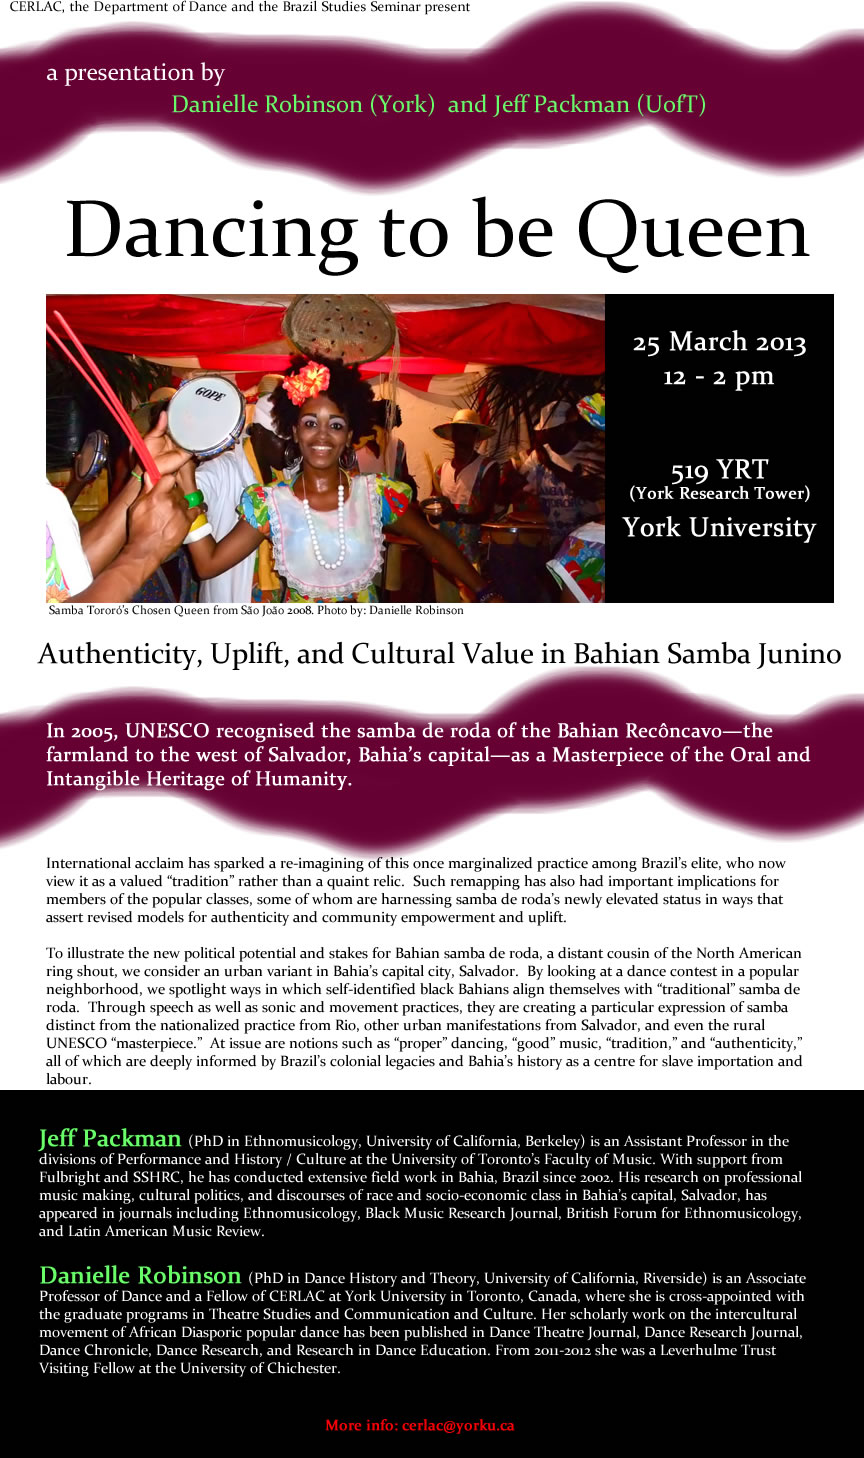 Dancing to be Queen Authenticity, Uplift, & Cultural Value in Bahian Samba Junino